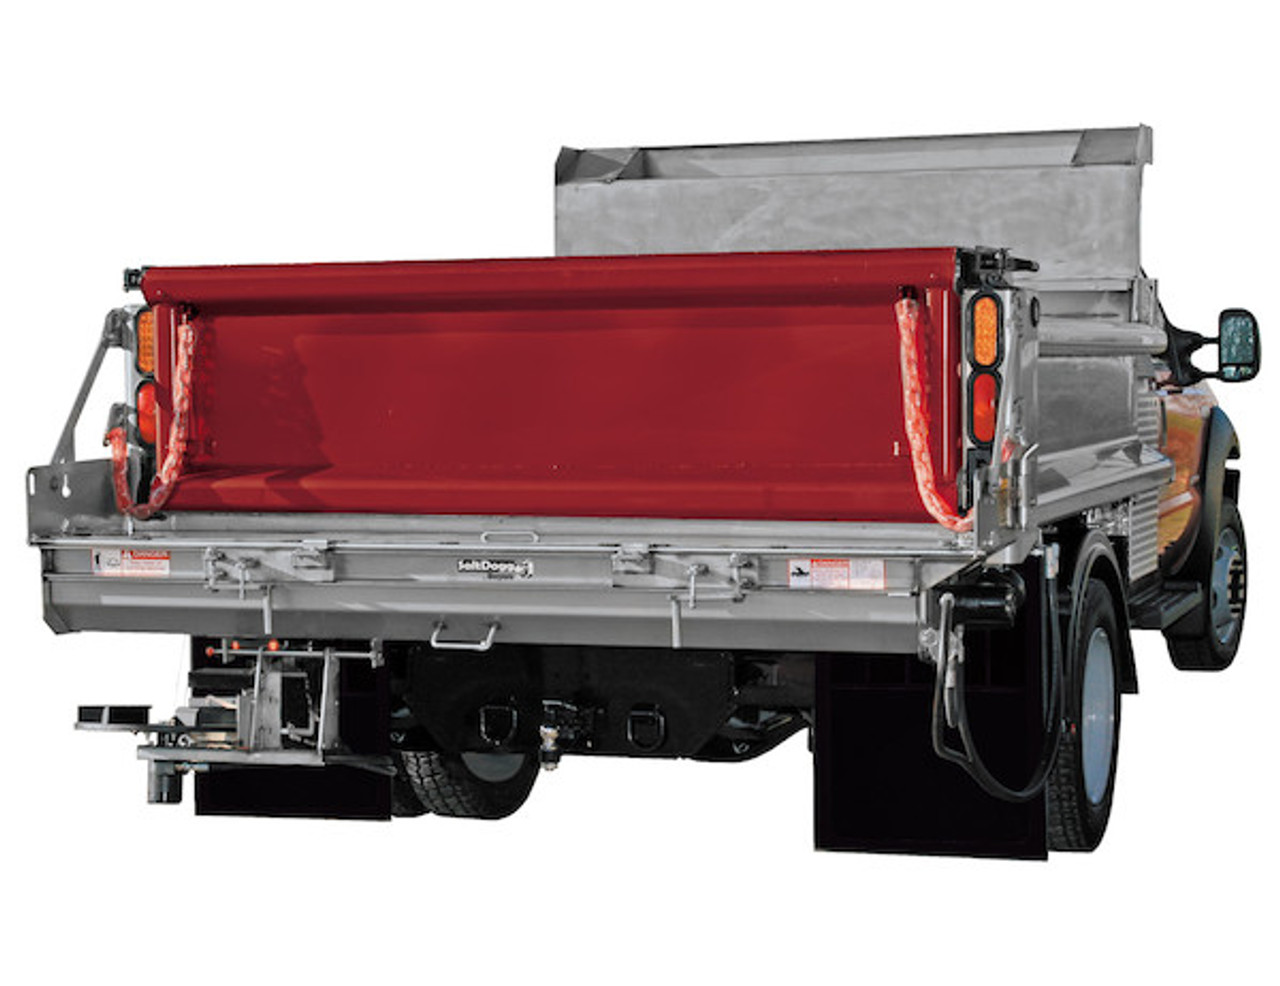 92422SSA BUYERS SALTDOGG HYDRAULIC UNDER TAILGATE SALT SPREADER WITH EXTENDED END PLATES, STANDARD DISCHARGE AND HARD FACED AUGER